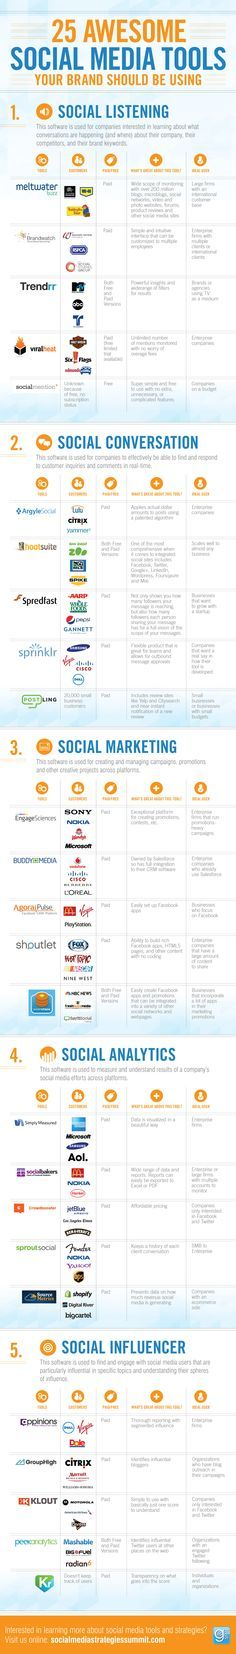 25 Awesome Social Media Monitoring Tools Your Brand Should Be Using | infographic | #socialmediatools